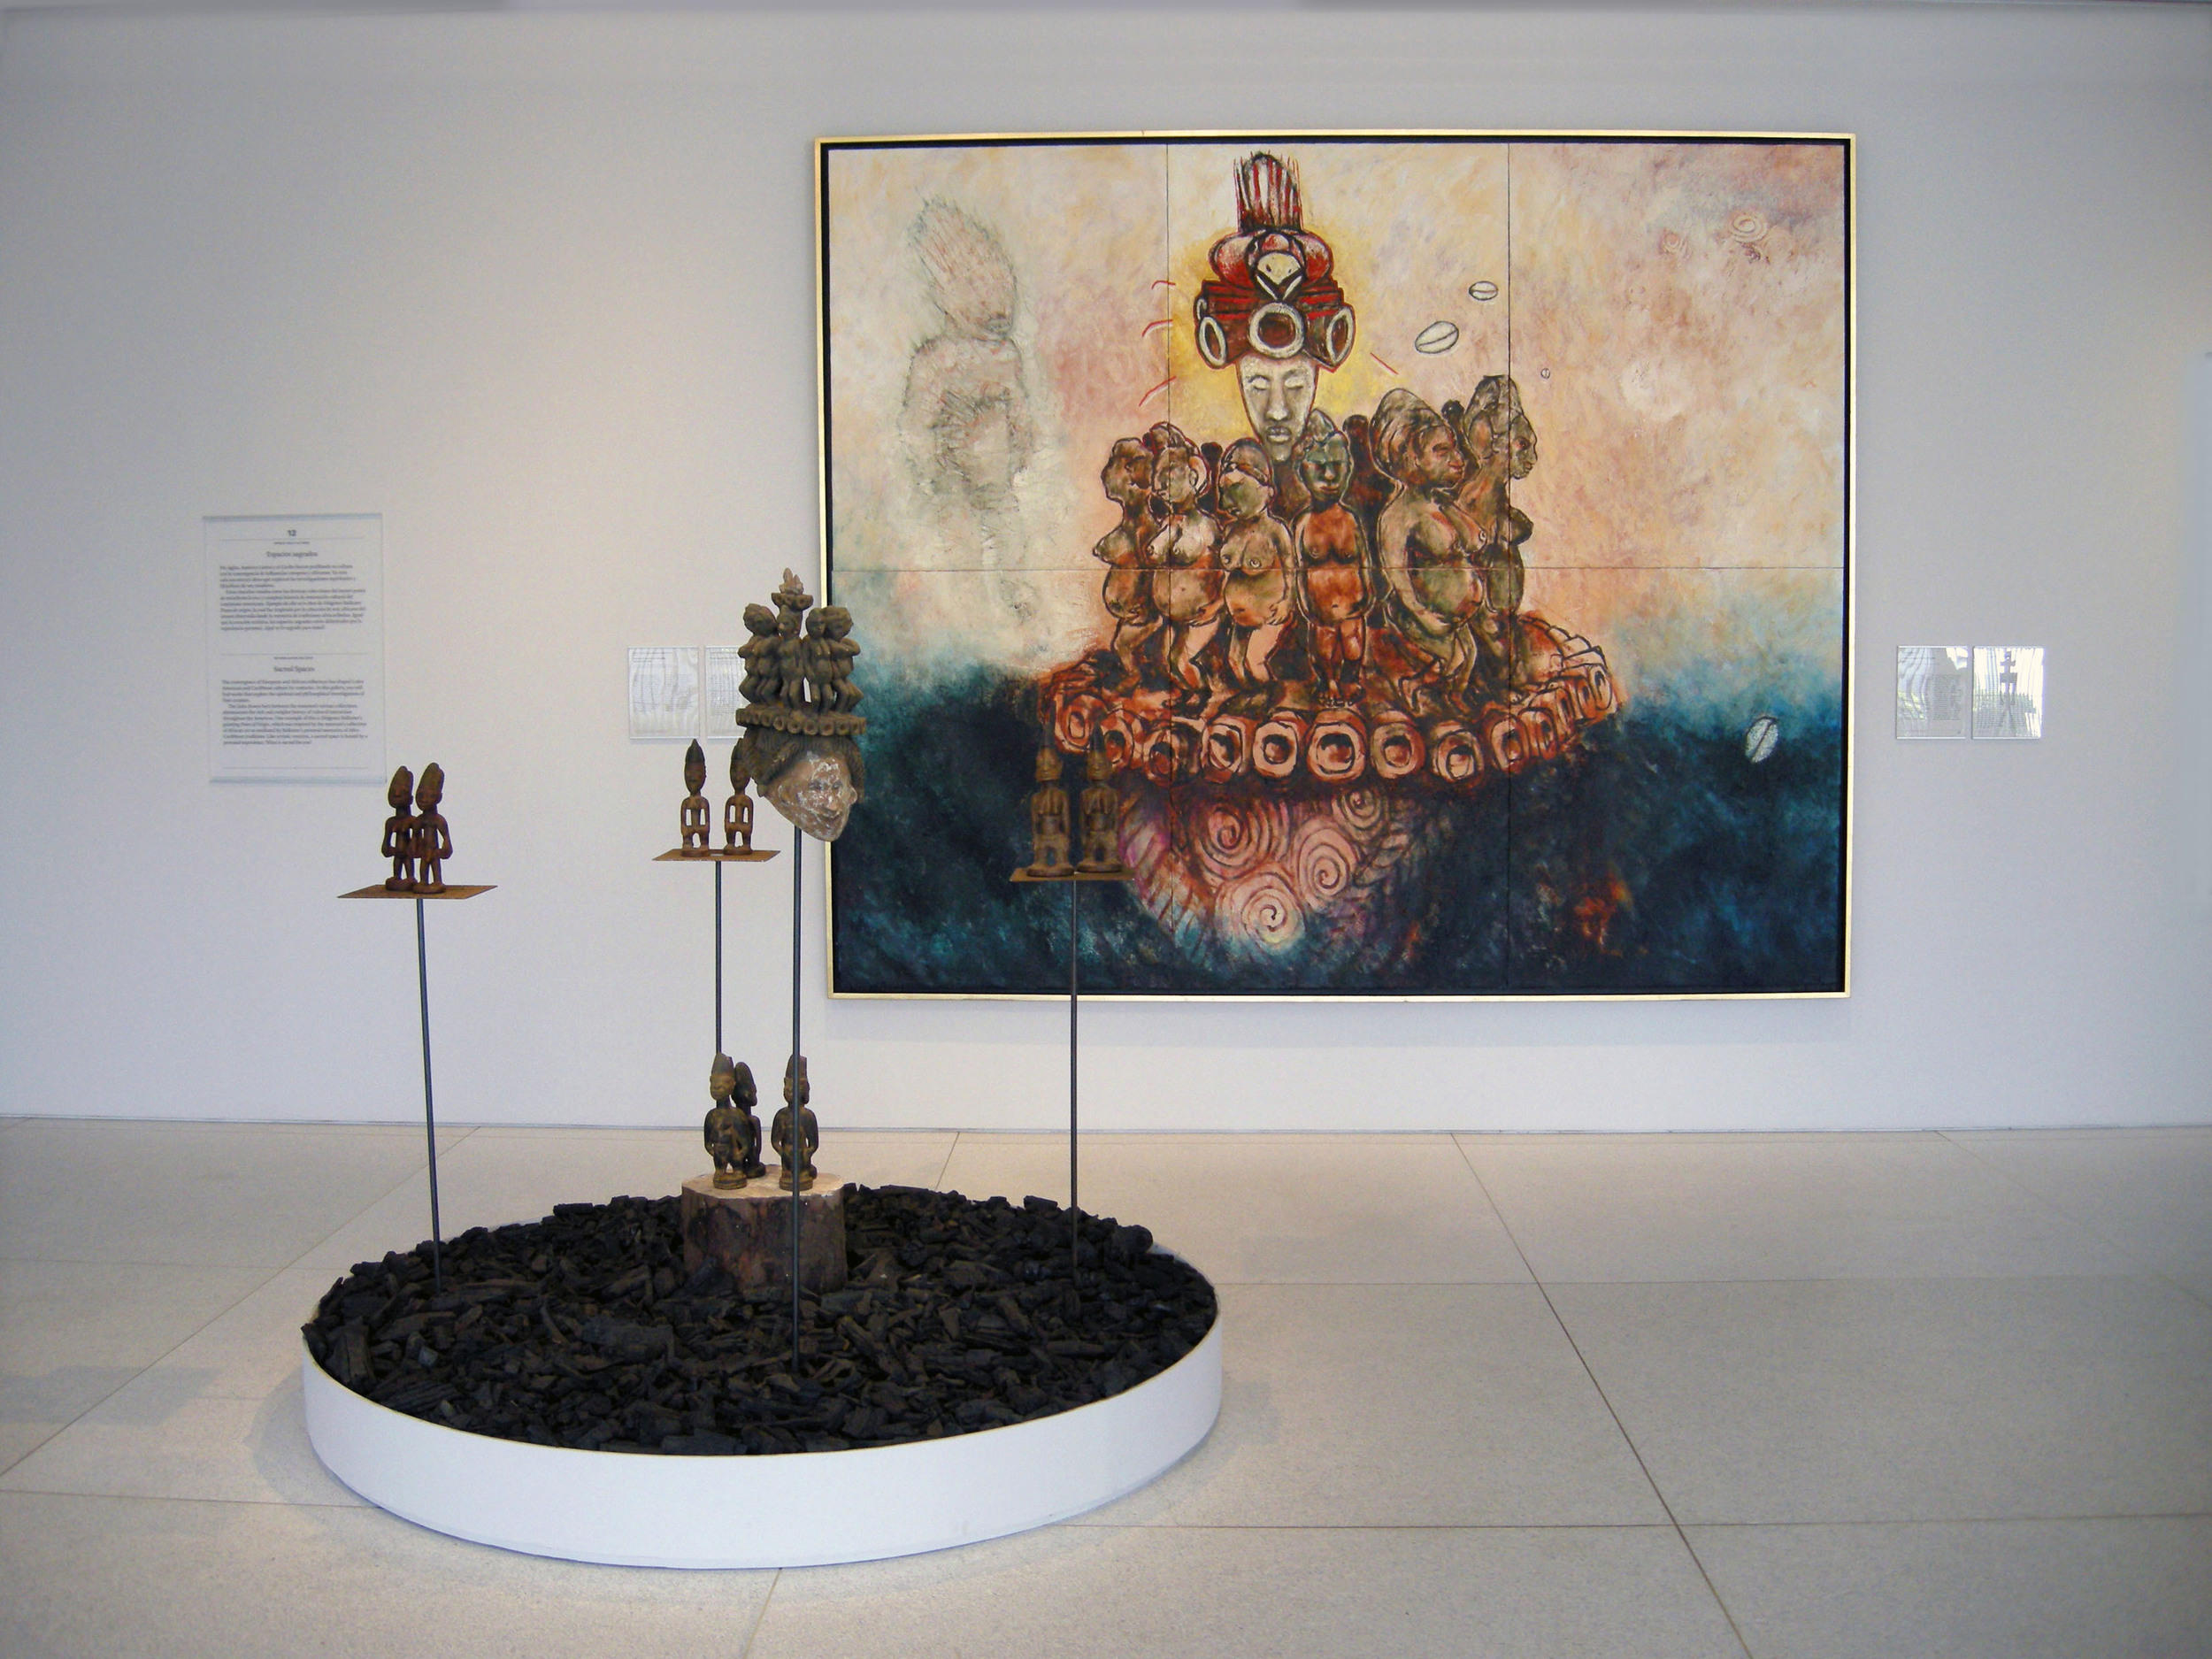 "Point of Origin, 2010, Encaustic Painting on Linen, African Wood Sculptures, Iron Stand, Circular Wood Base, Tree Trunk and Charcoal, 120"" X 120"" X 120"""